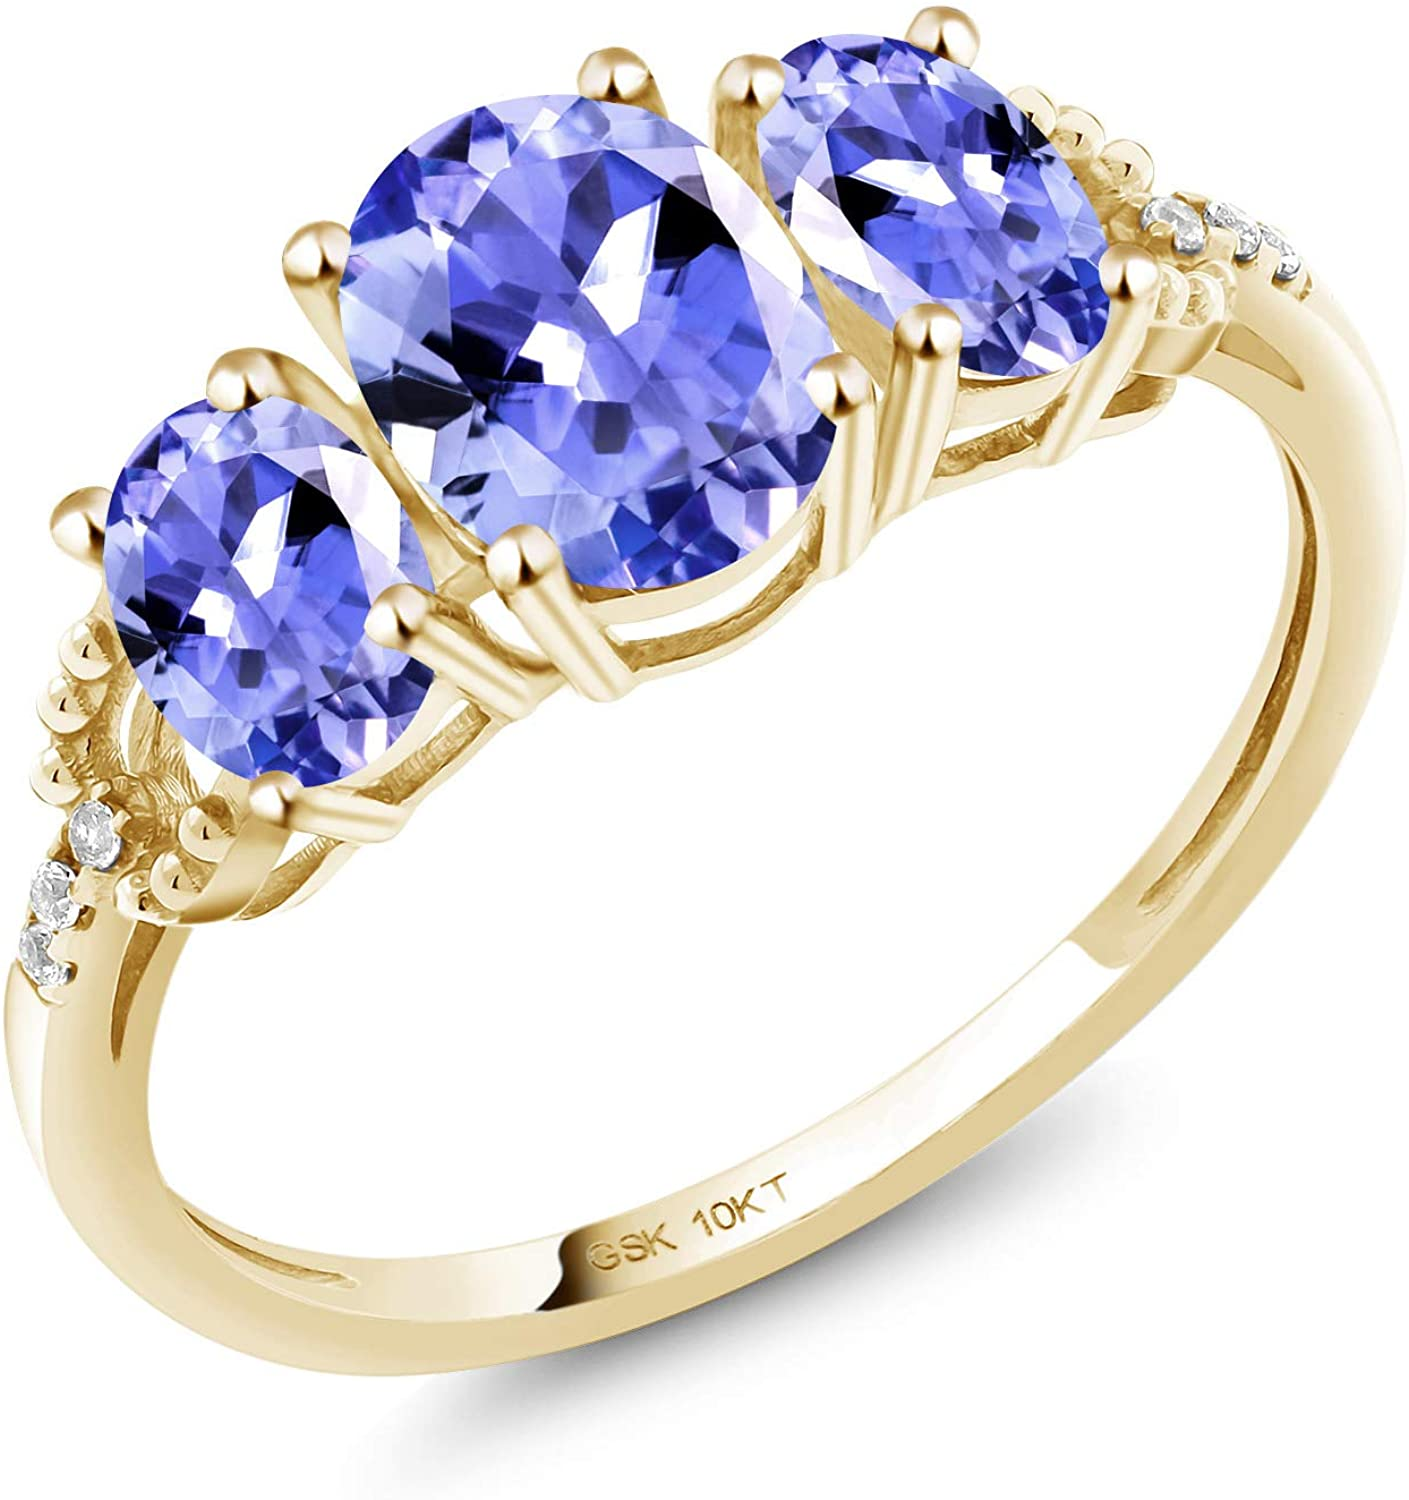 Gem Stone King 10K Yellow Gold Oval Blue Tanzanite Women's Engagement Ring (1.67 Ct Gemstone Birthstone Available in size 5, 6, 7, 8, 9)